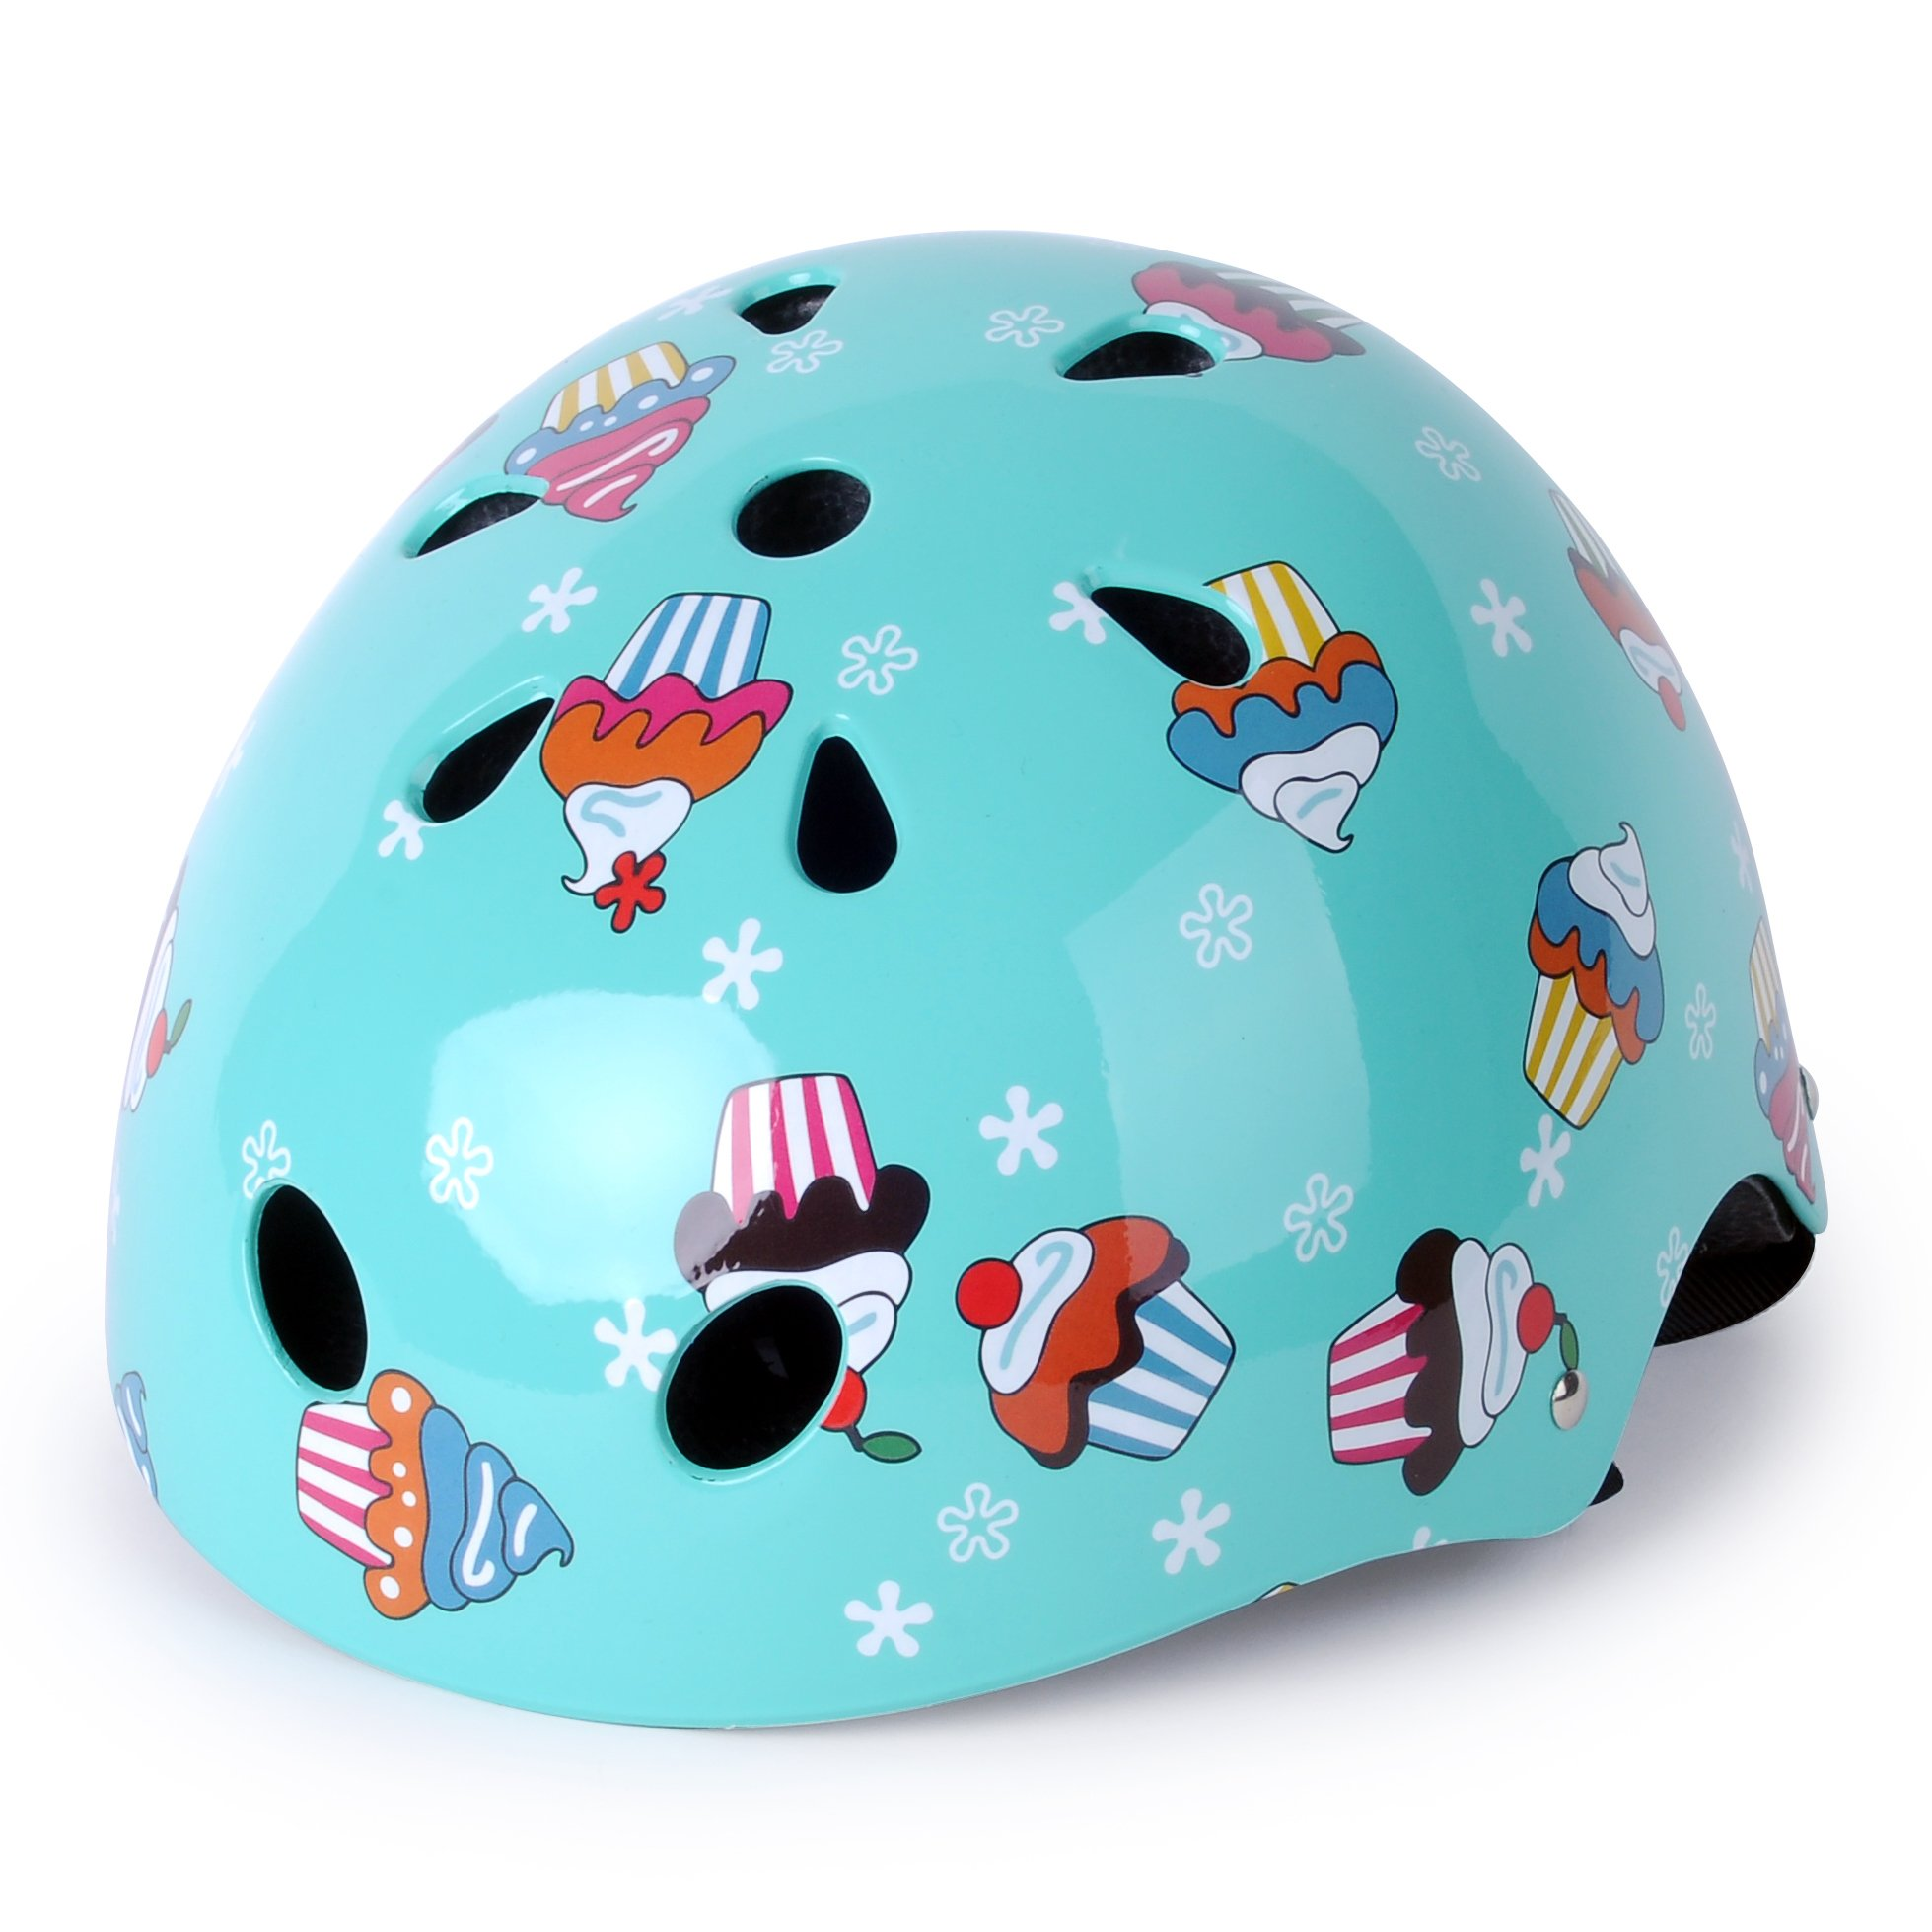 WIN.MAX WinMax Multi-sport Skateboarding Skating & Cycling Safety Bike Helmet for Kids (Robin Egg Blue, with Pattern, M)